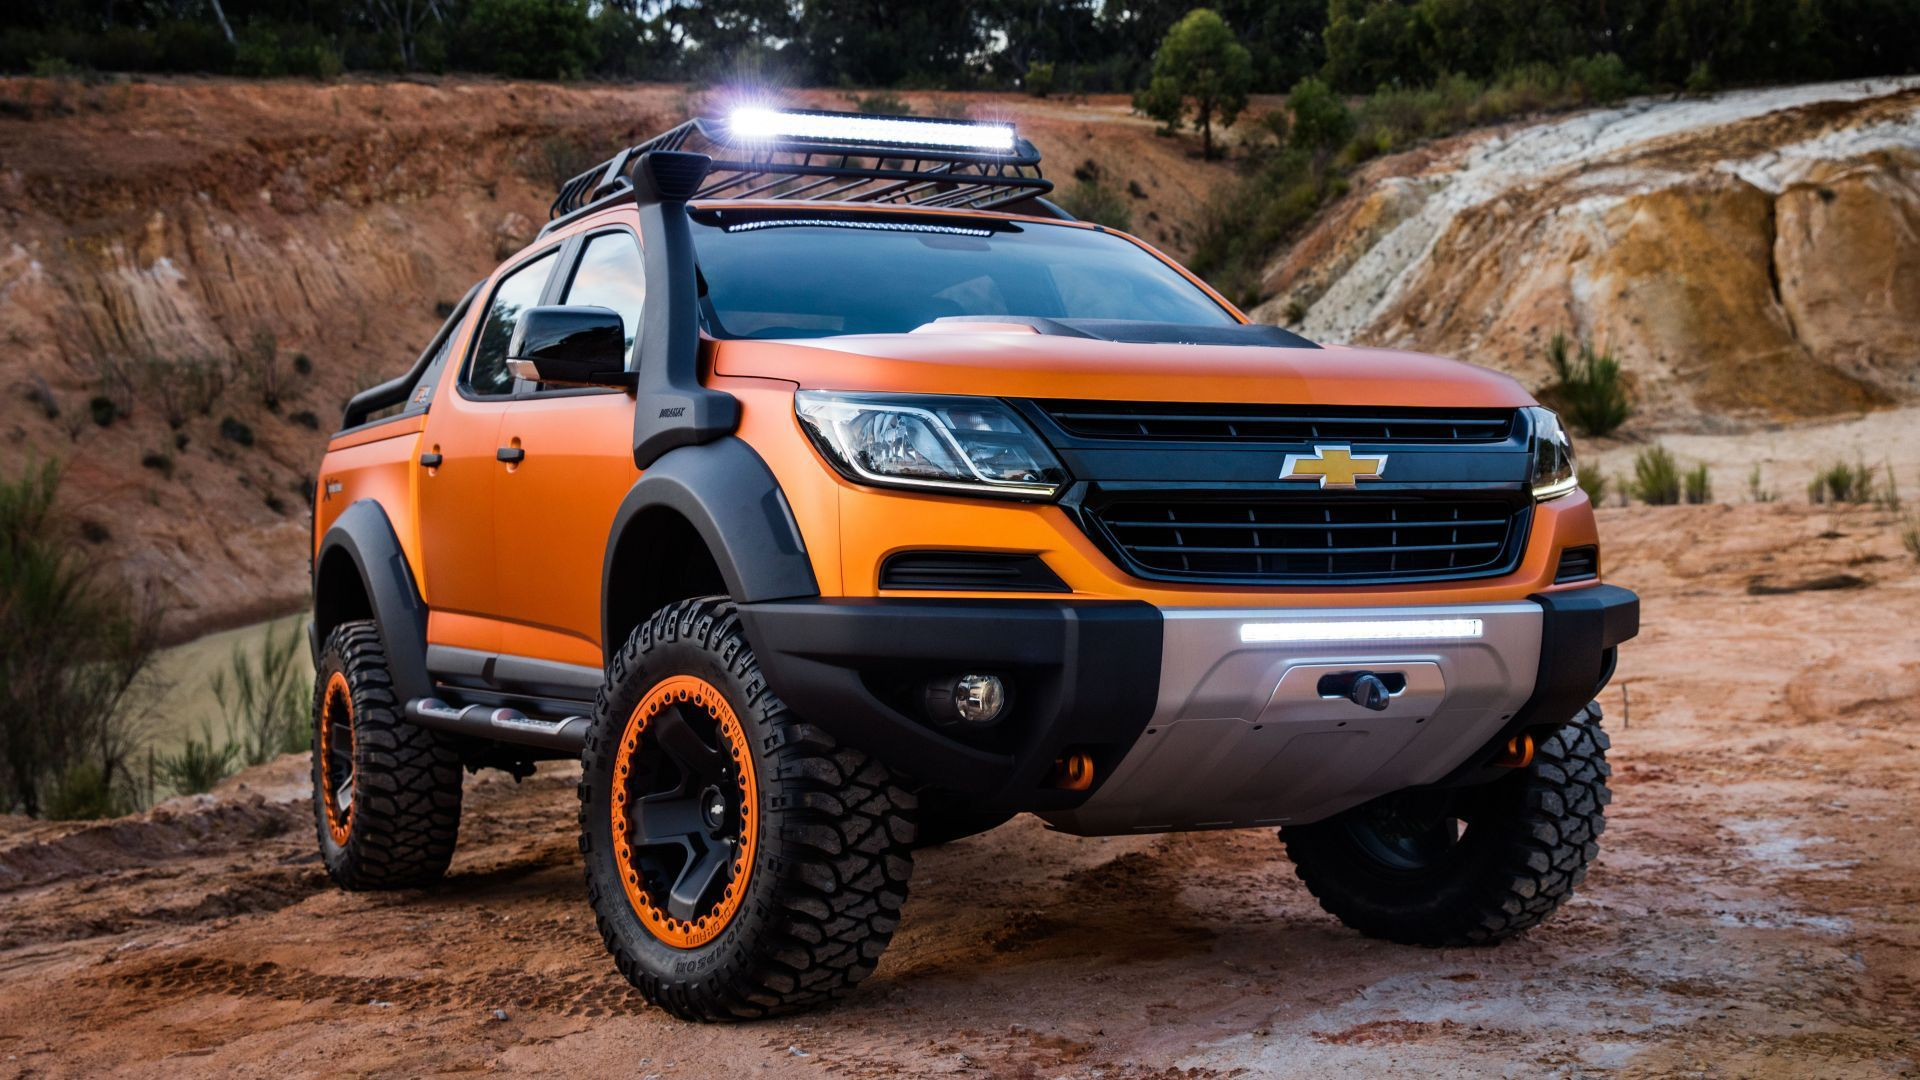 Chevy Colorado Diesel Release Date >> 2019 Chevy Colorado ZR2 Release Date – 2019 Chevy Colorado ZR2 is undoubtedly a brand new pickup ...